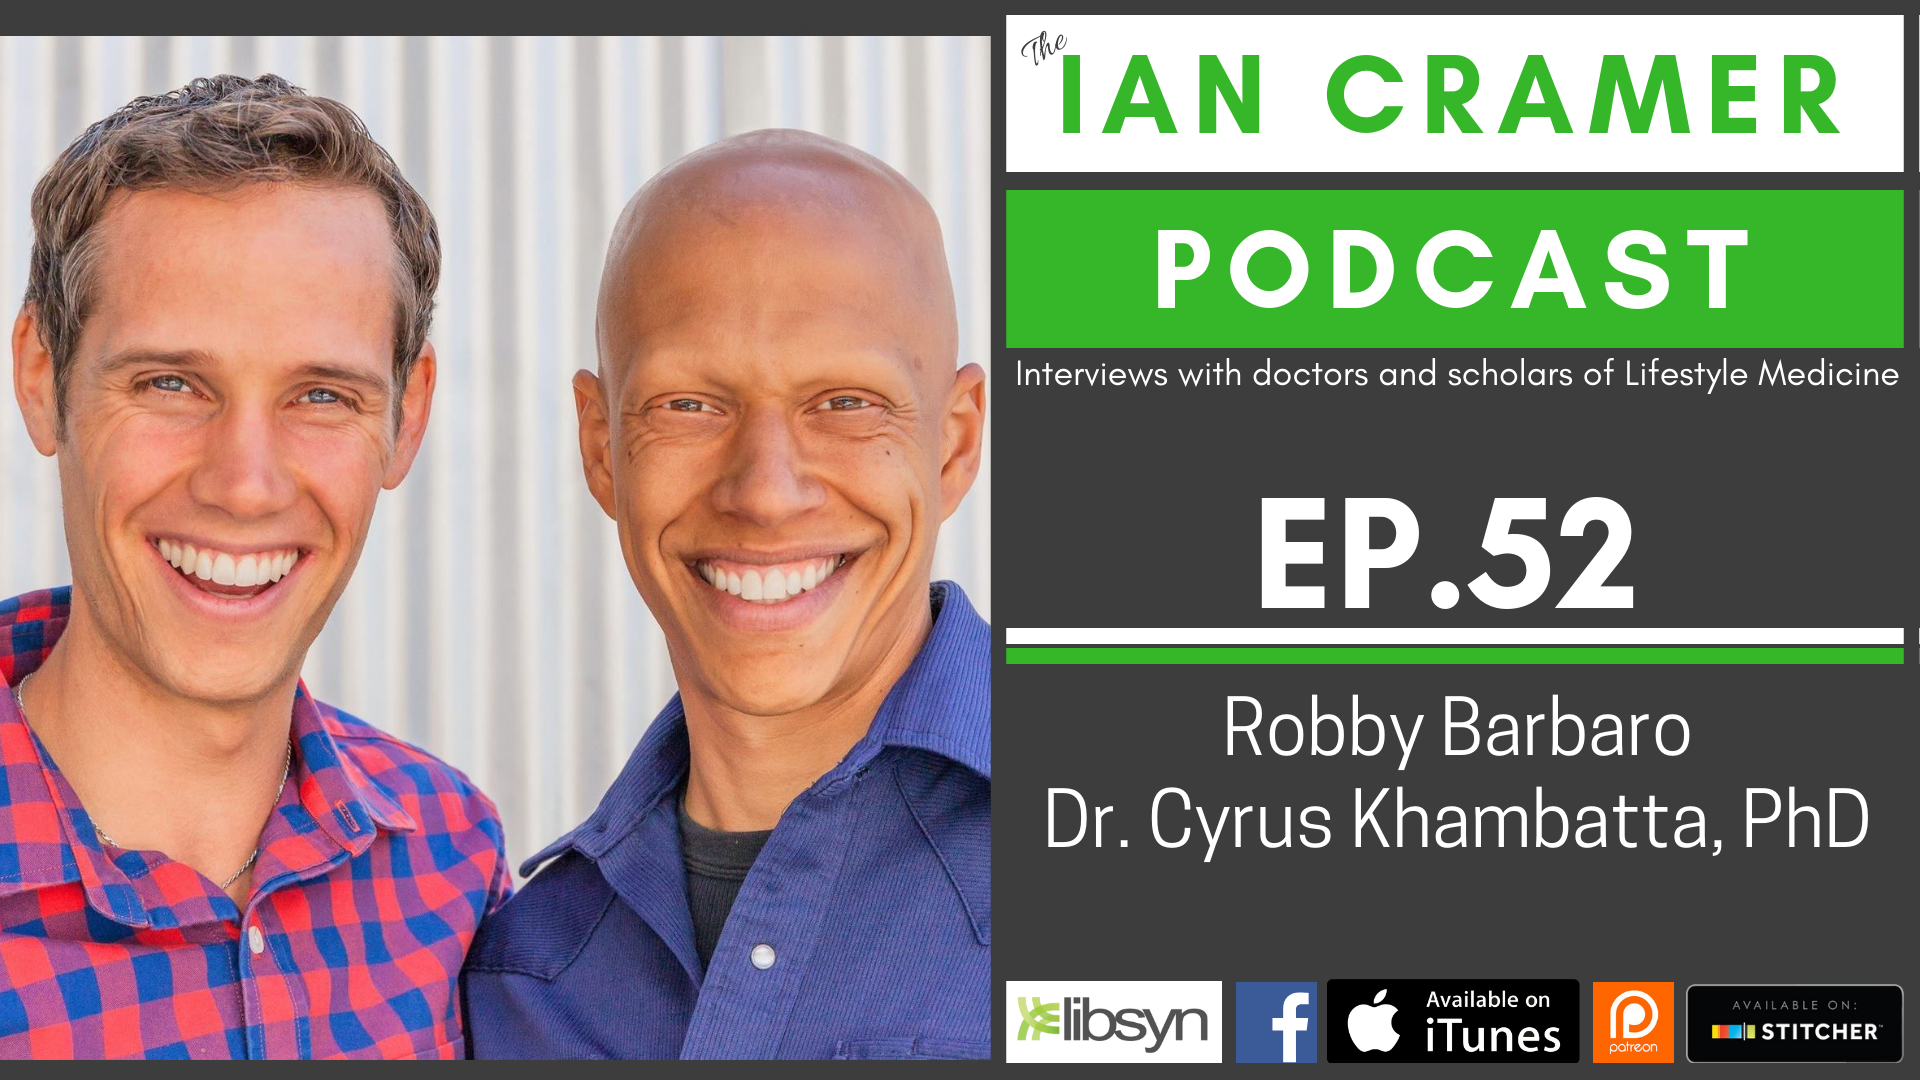 The Ian Cramer Podcast: ICP 52: Robby Barbaro and Dr  Cyrus